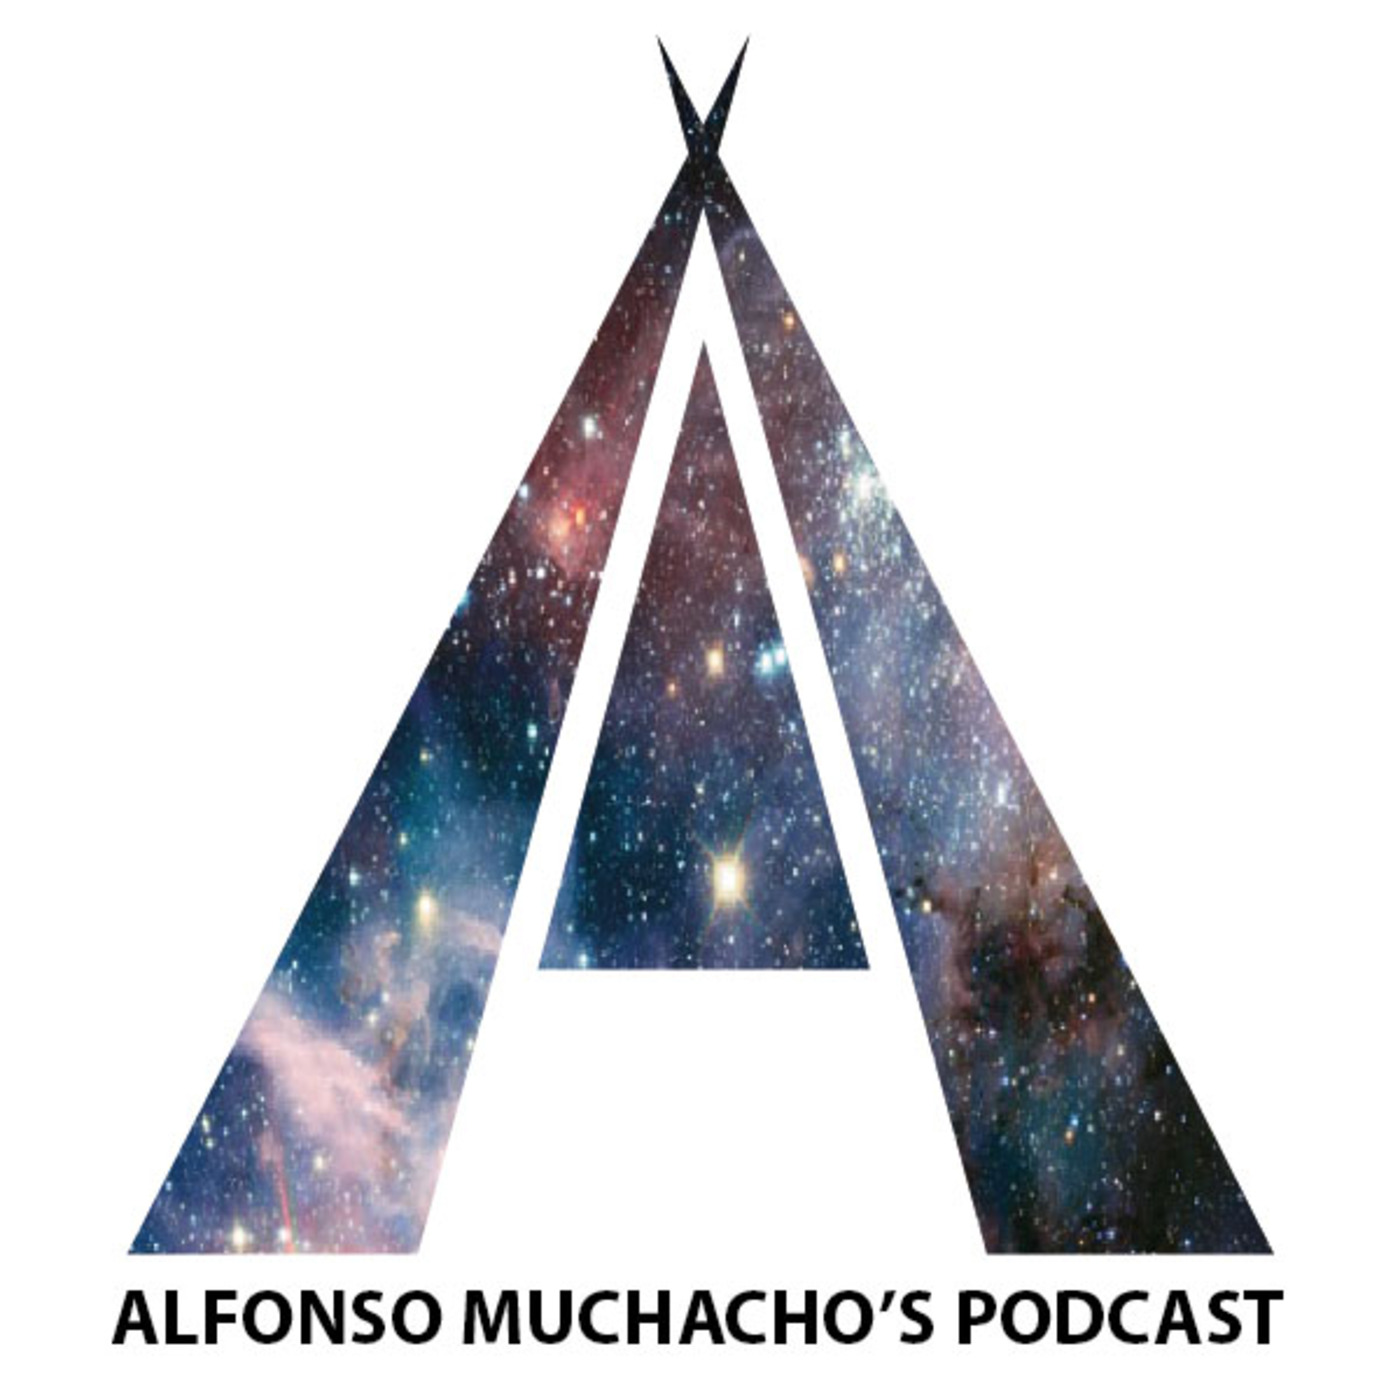 Alfonso Muchacho's Podcast